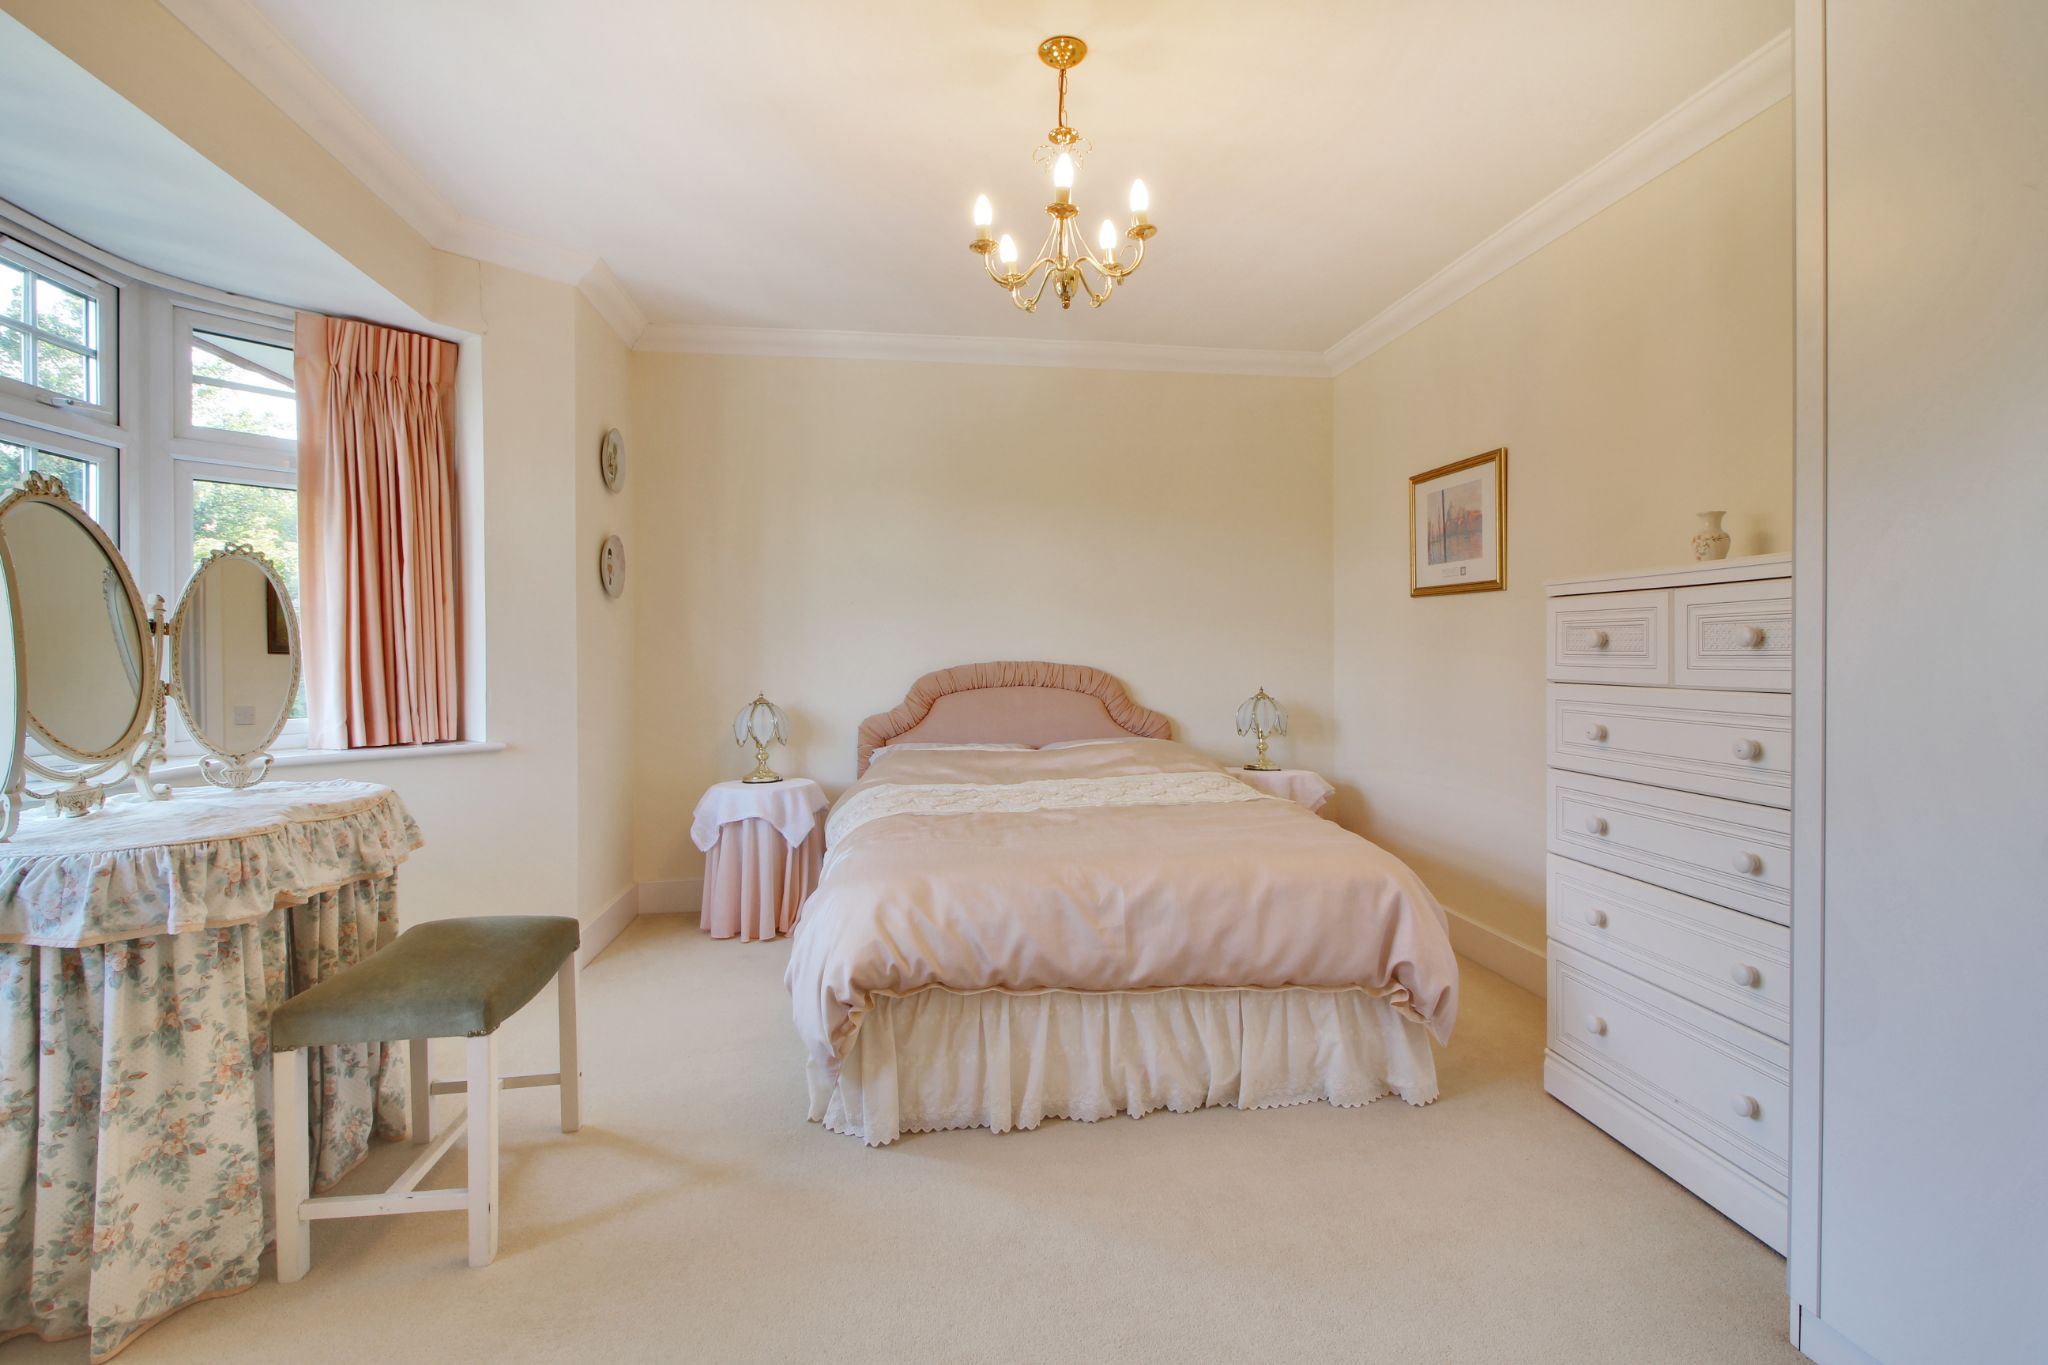 5 bedroom detached house For Sale in Sevenoaks - Photograph 9